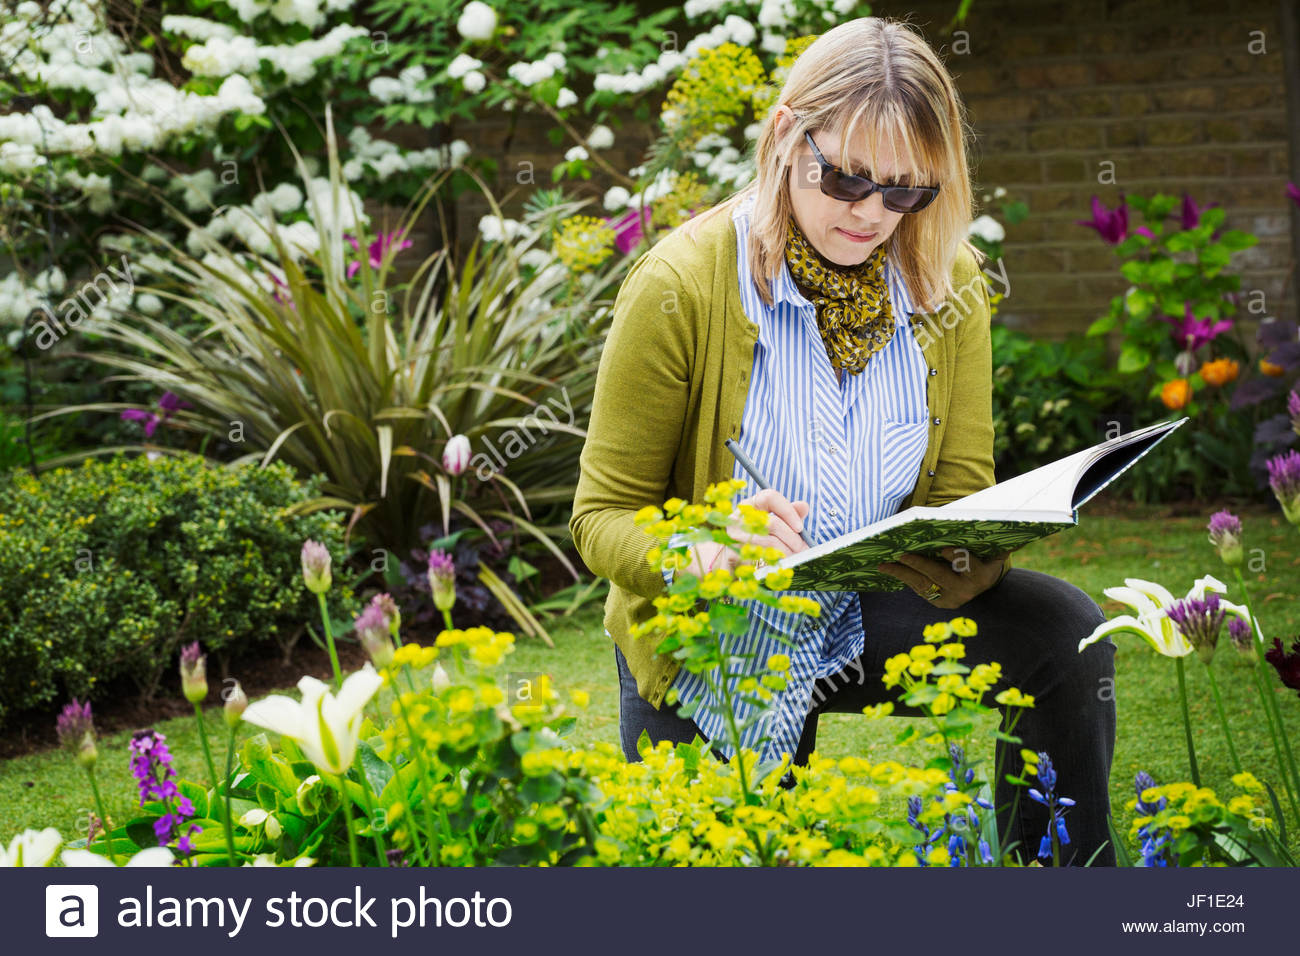 1300x956 Woman Wearing Sunglasses Standing In A Garden By A Flowerbed